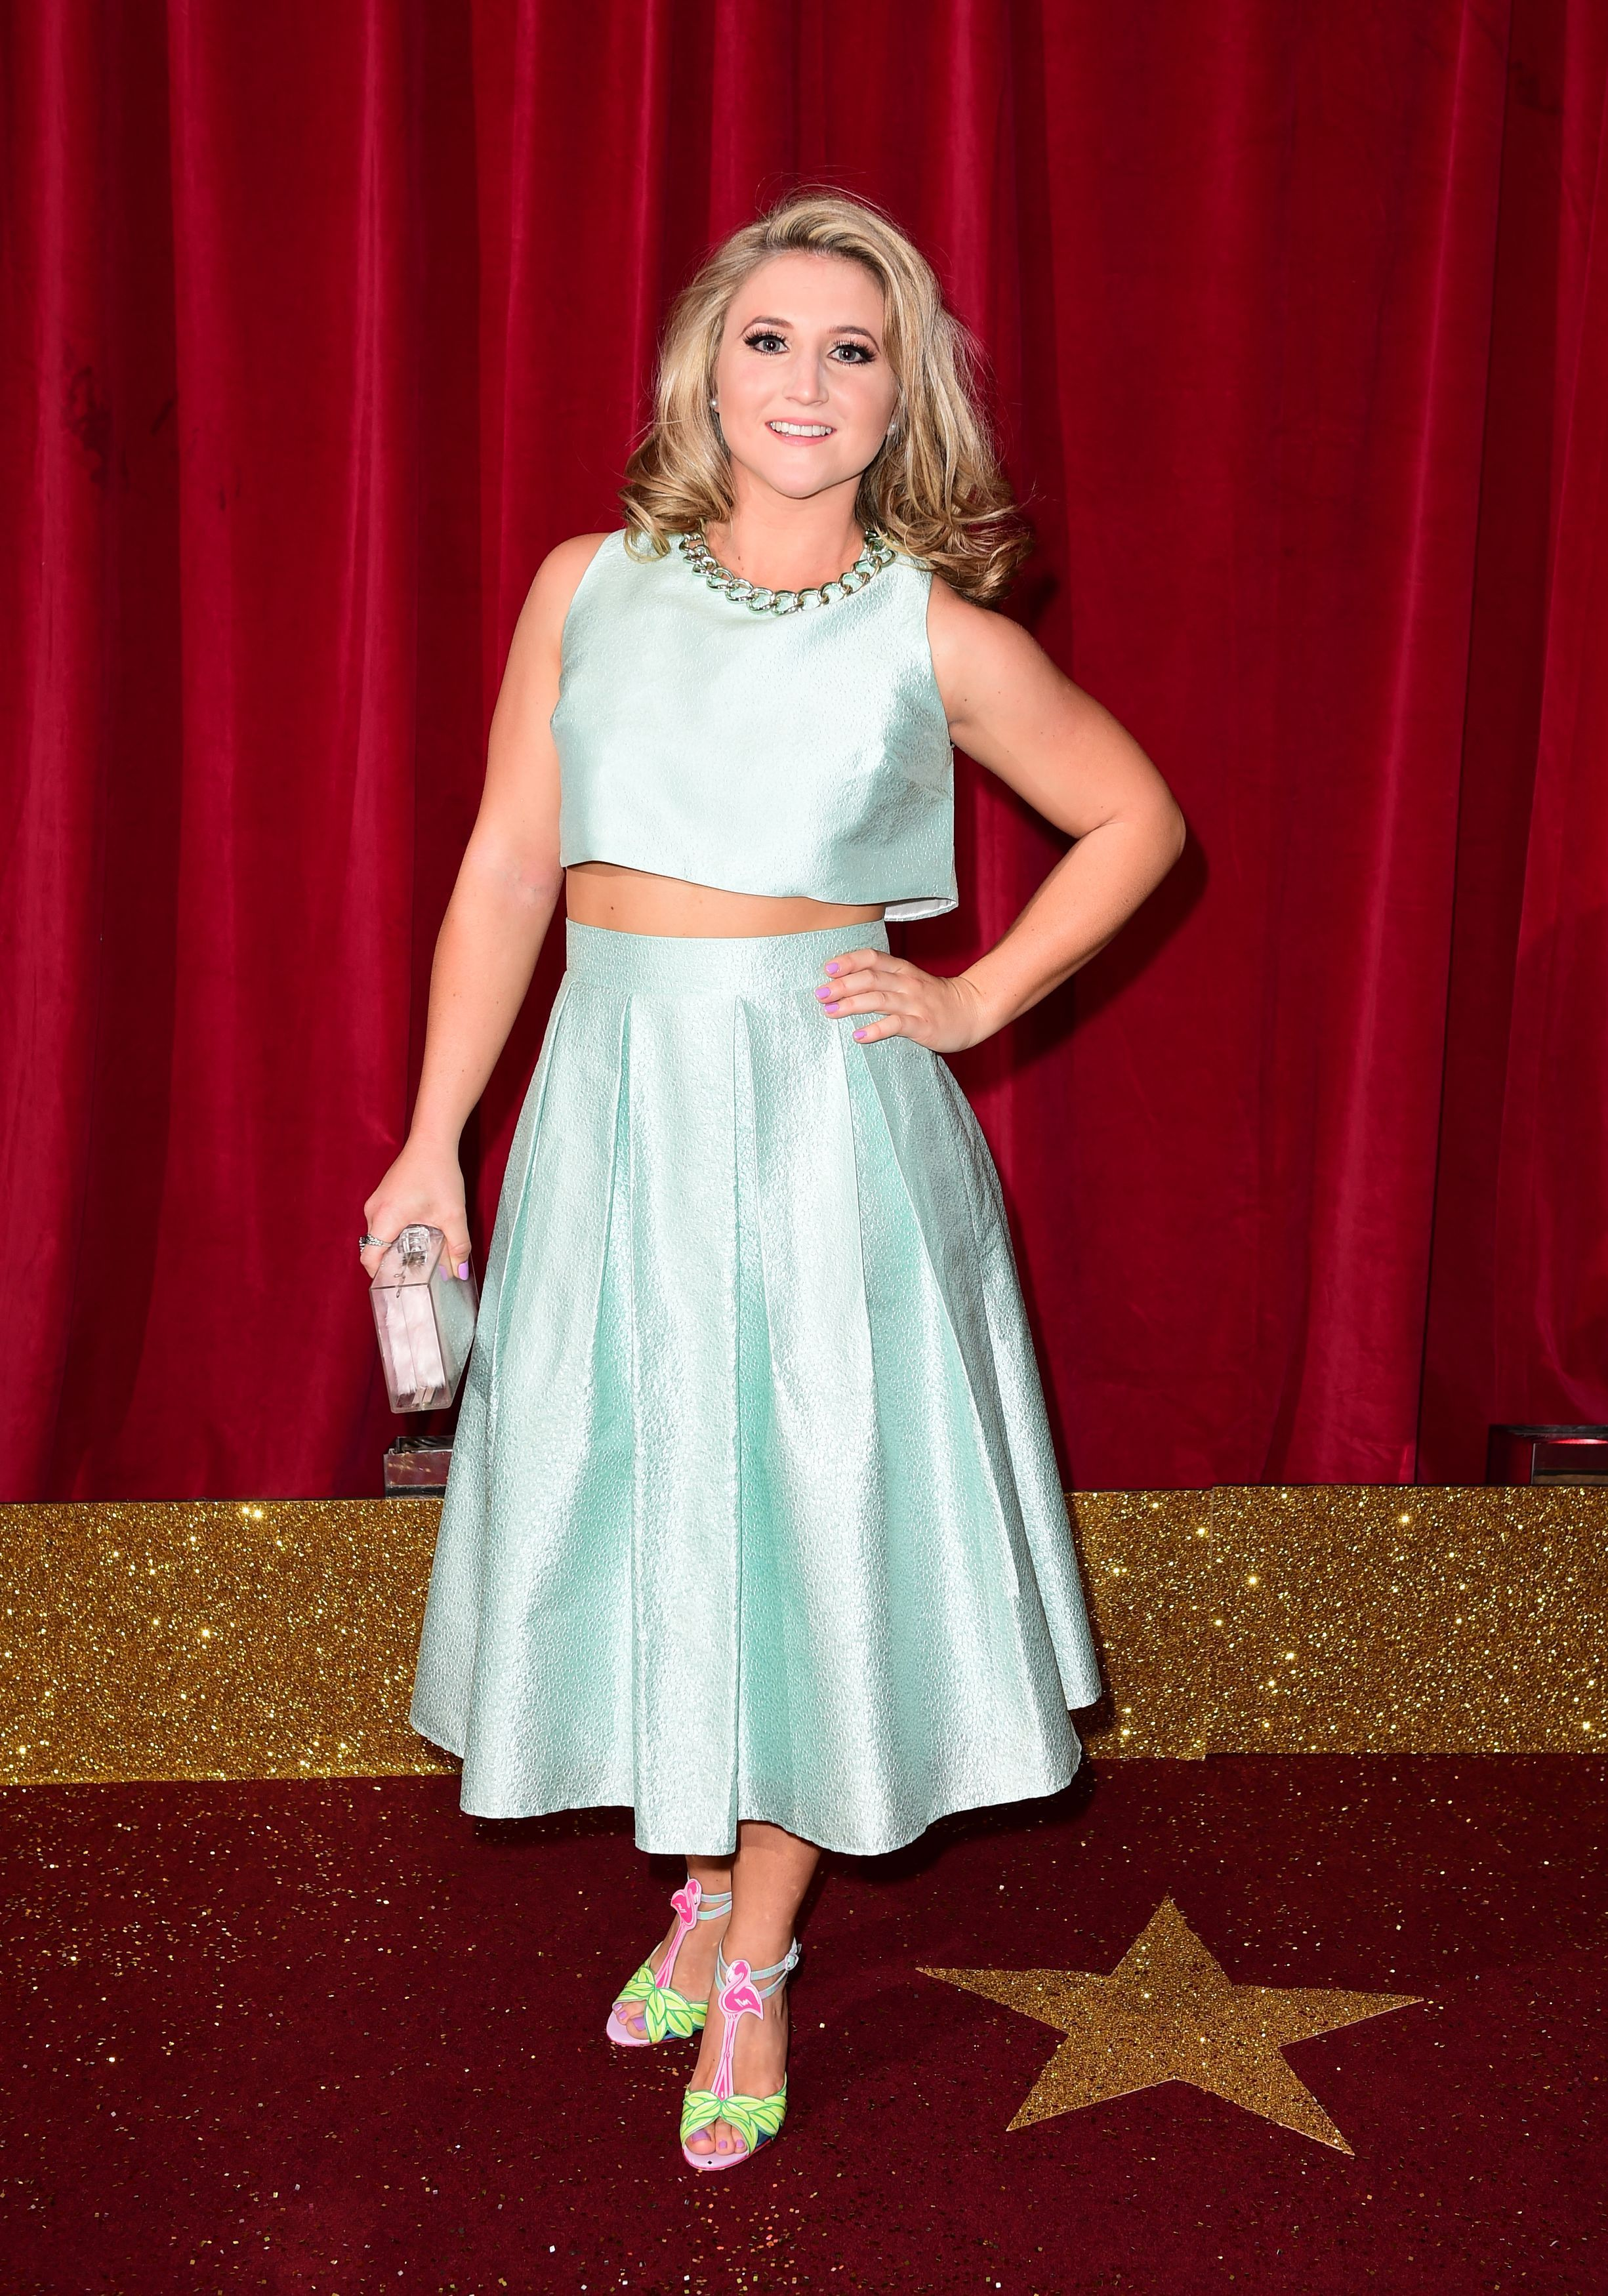 Former Hollyoaks star Jazmine Franks shows off new look as she prepares to launch next project